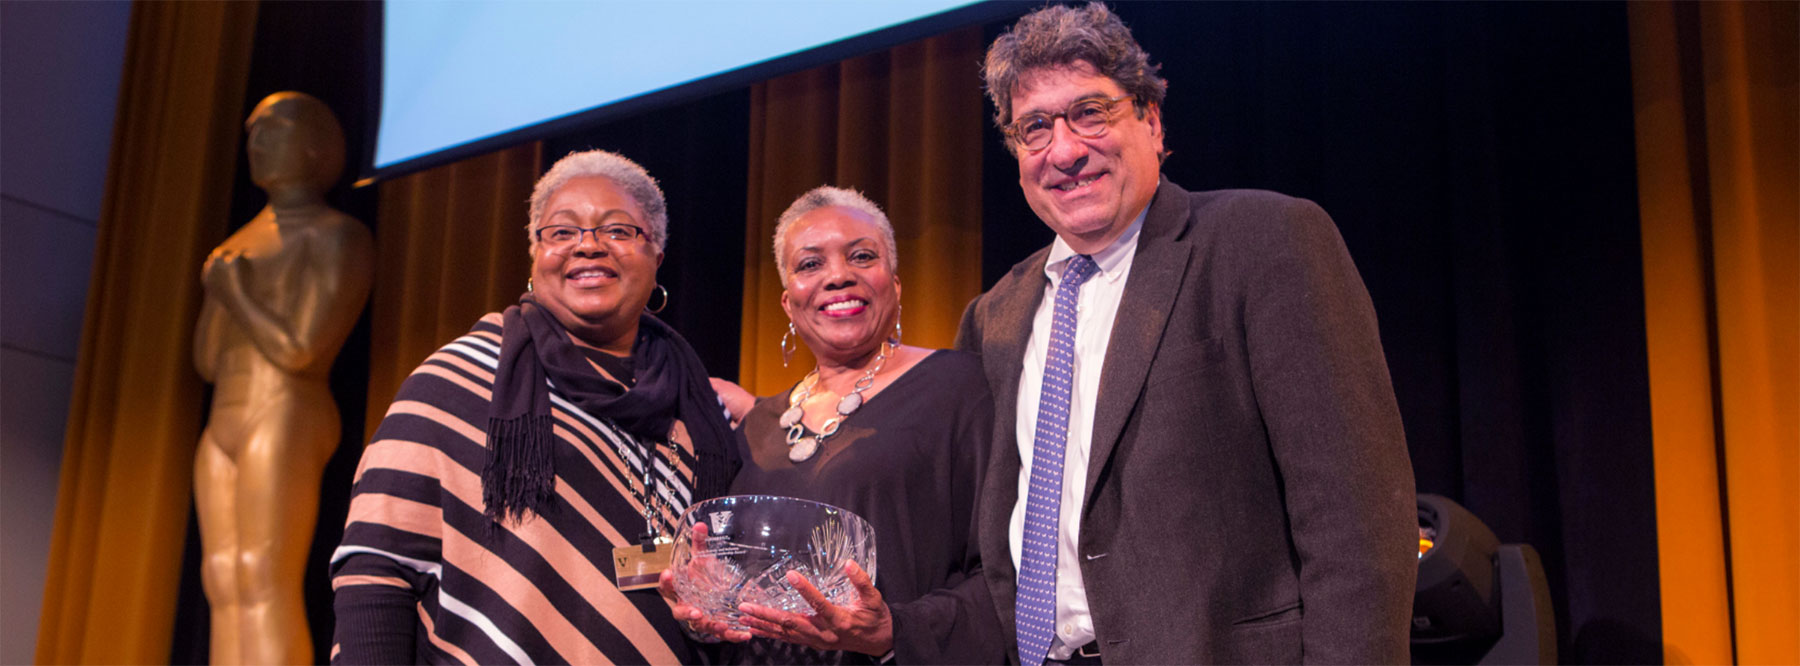 The Equity, Diversity and Inclusion Distinguished Leadership Award recognizes staff commitment to equity, diversity and inclusion